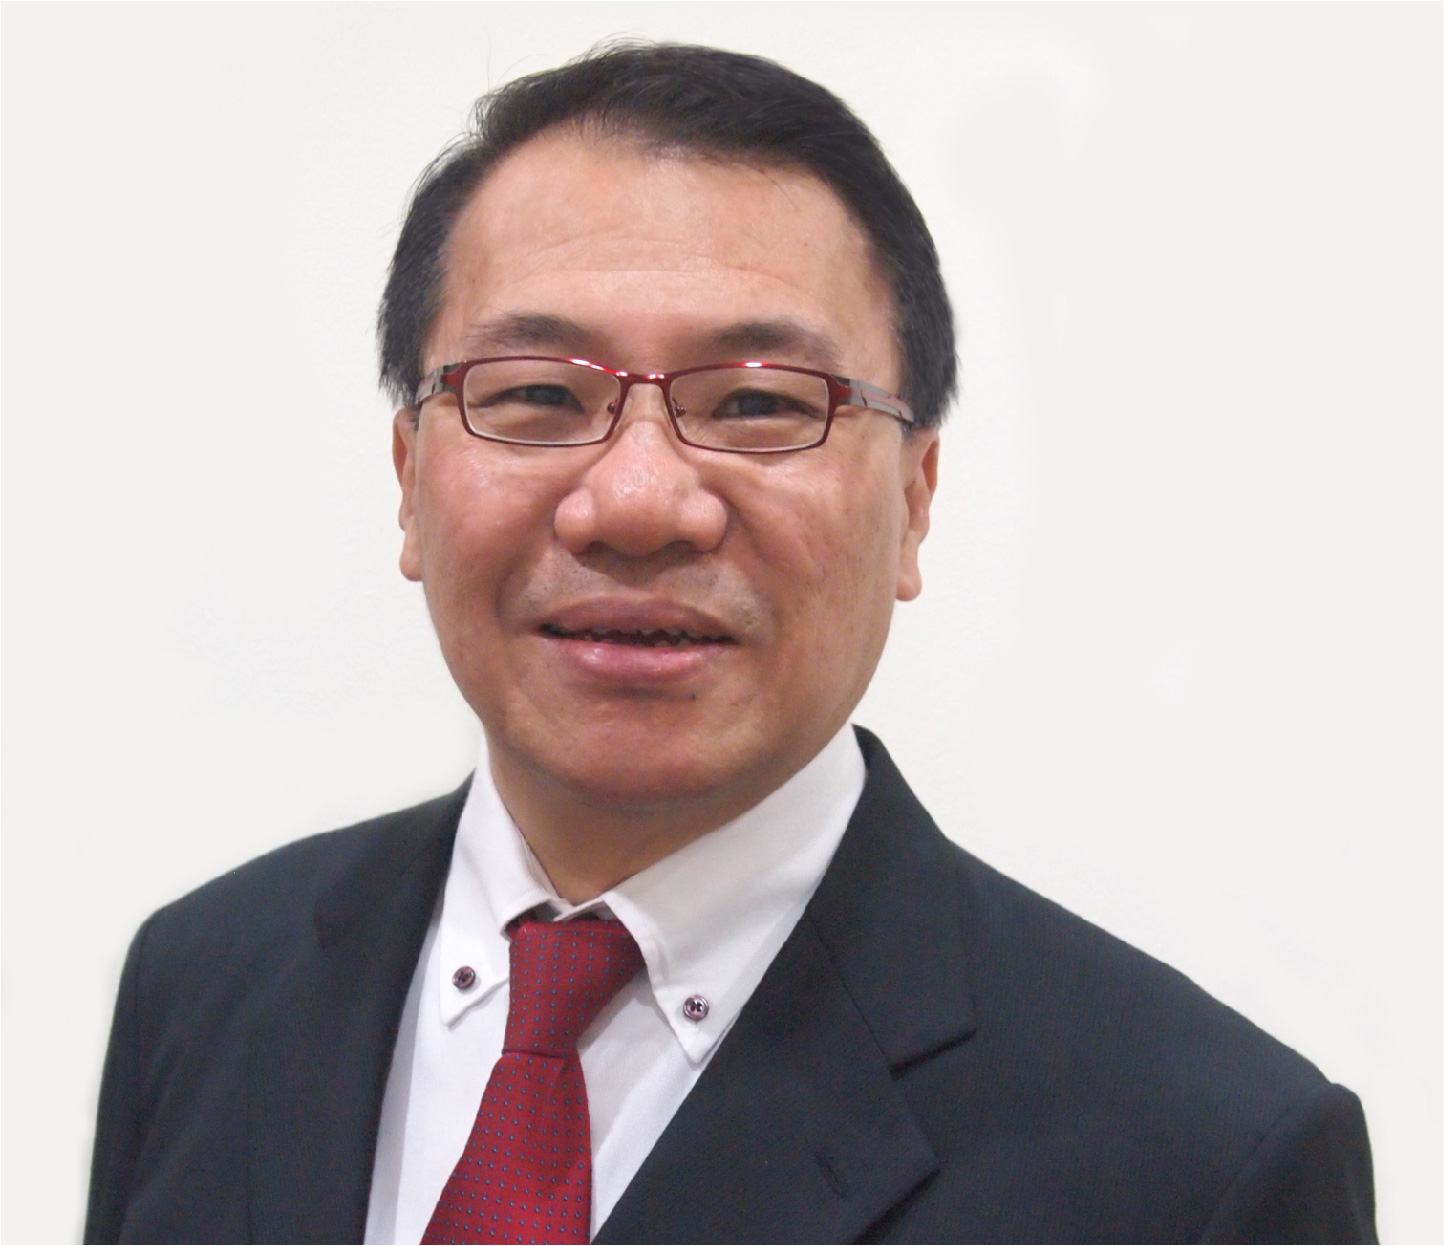 GS1 Singapore CEO, Mr Liew Wai Leong